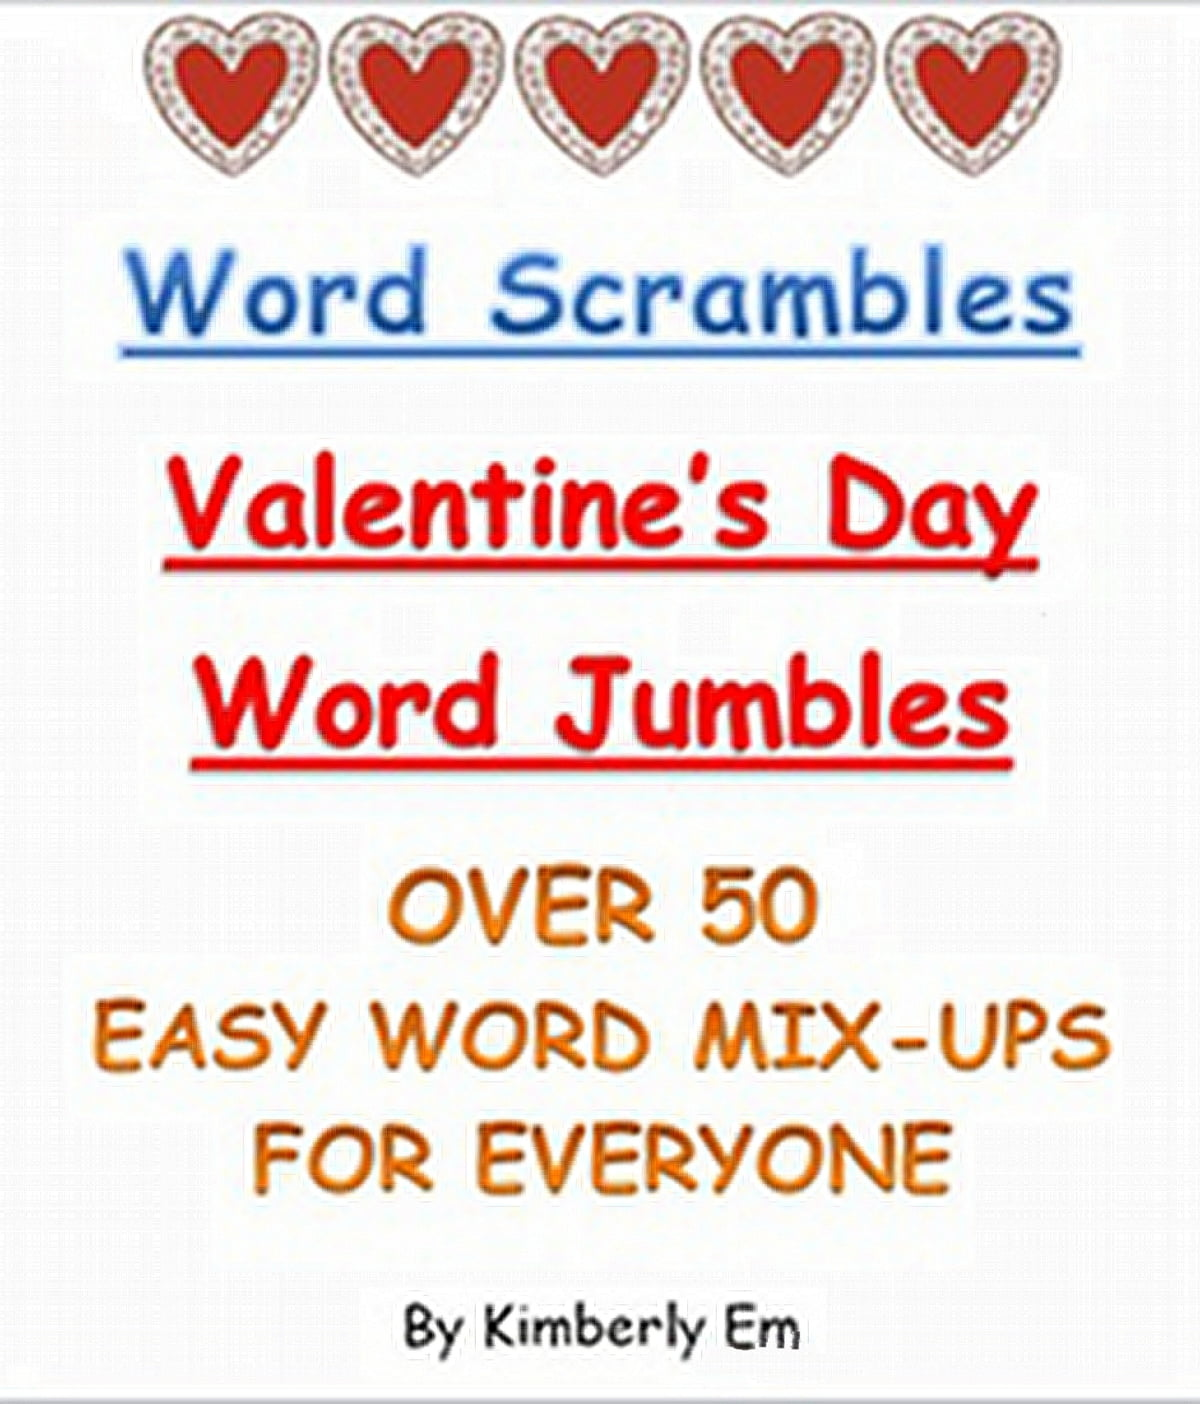 Word Scrambles Over 50 Valentine S Day Word Jumbles Ebook By Kimberly Em